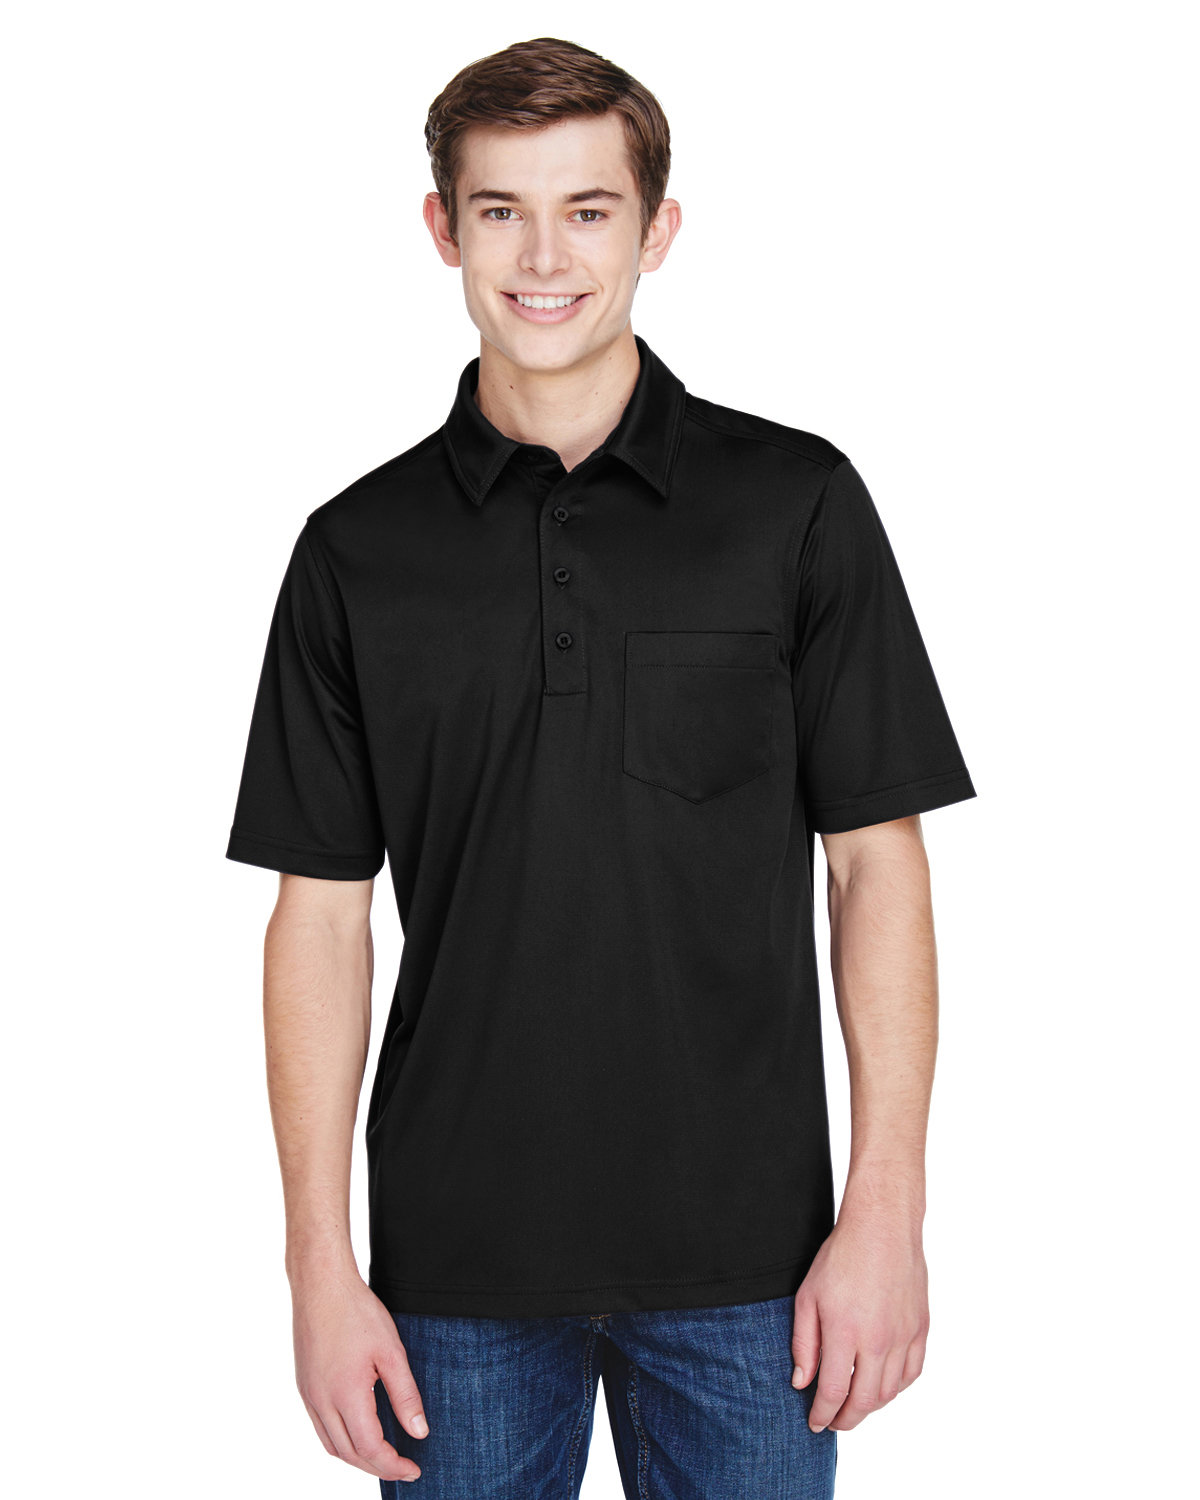 Extreme Men's Tall Eperformance™ Shift Snag Protection Plus Polo BLACK